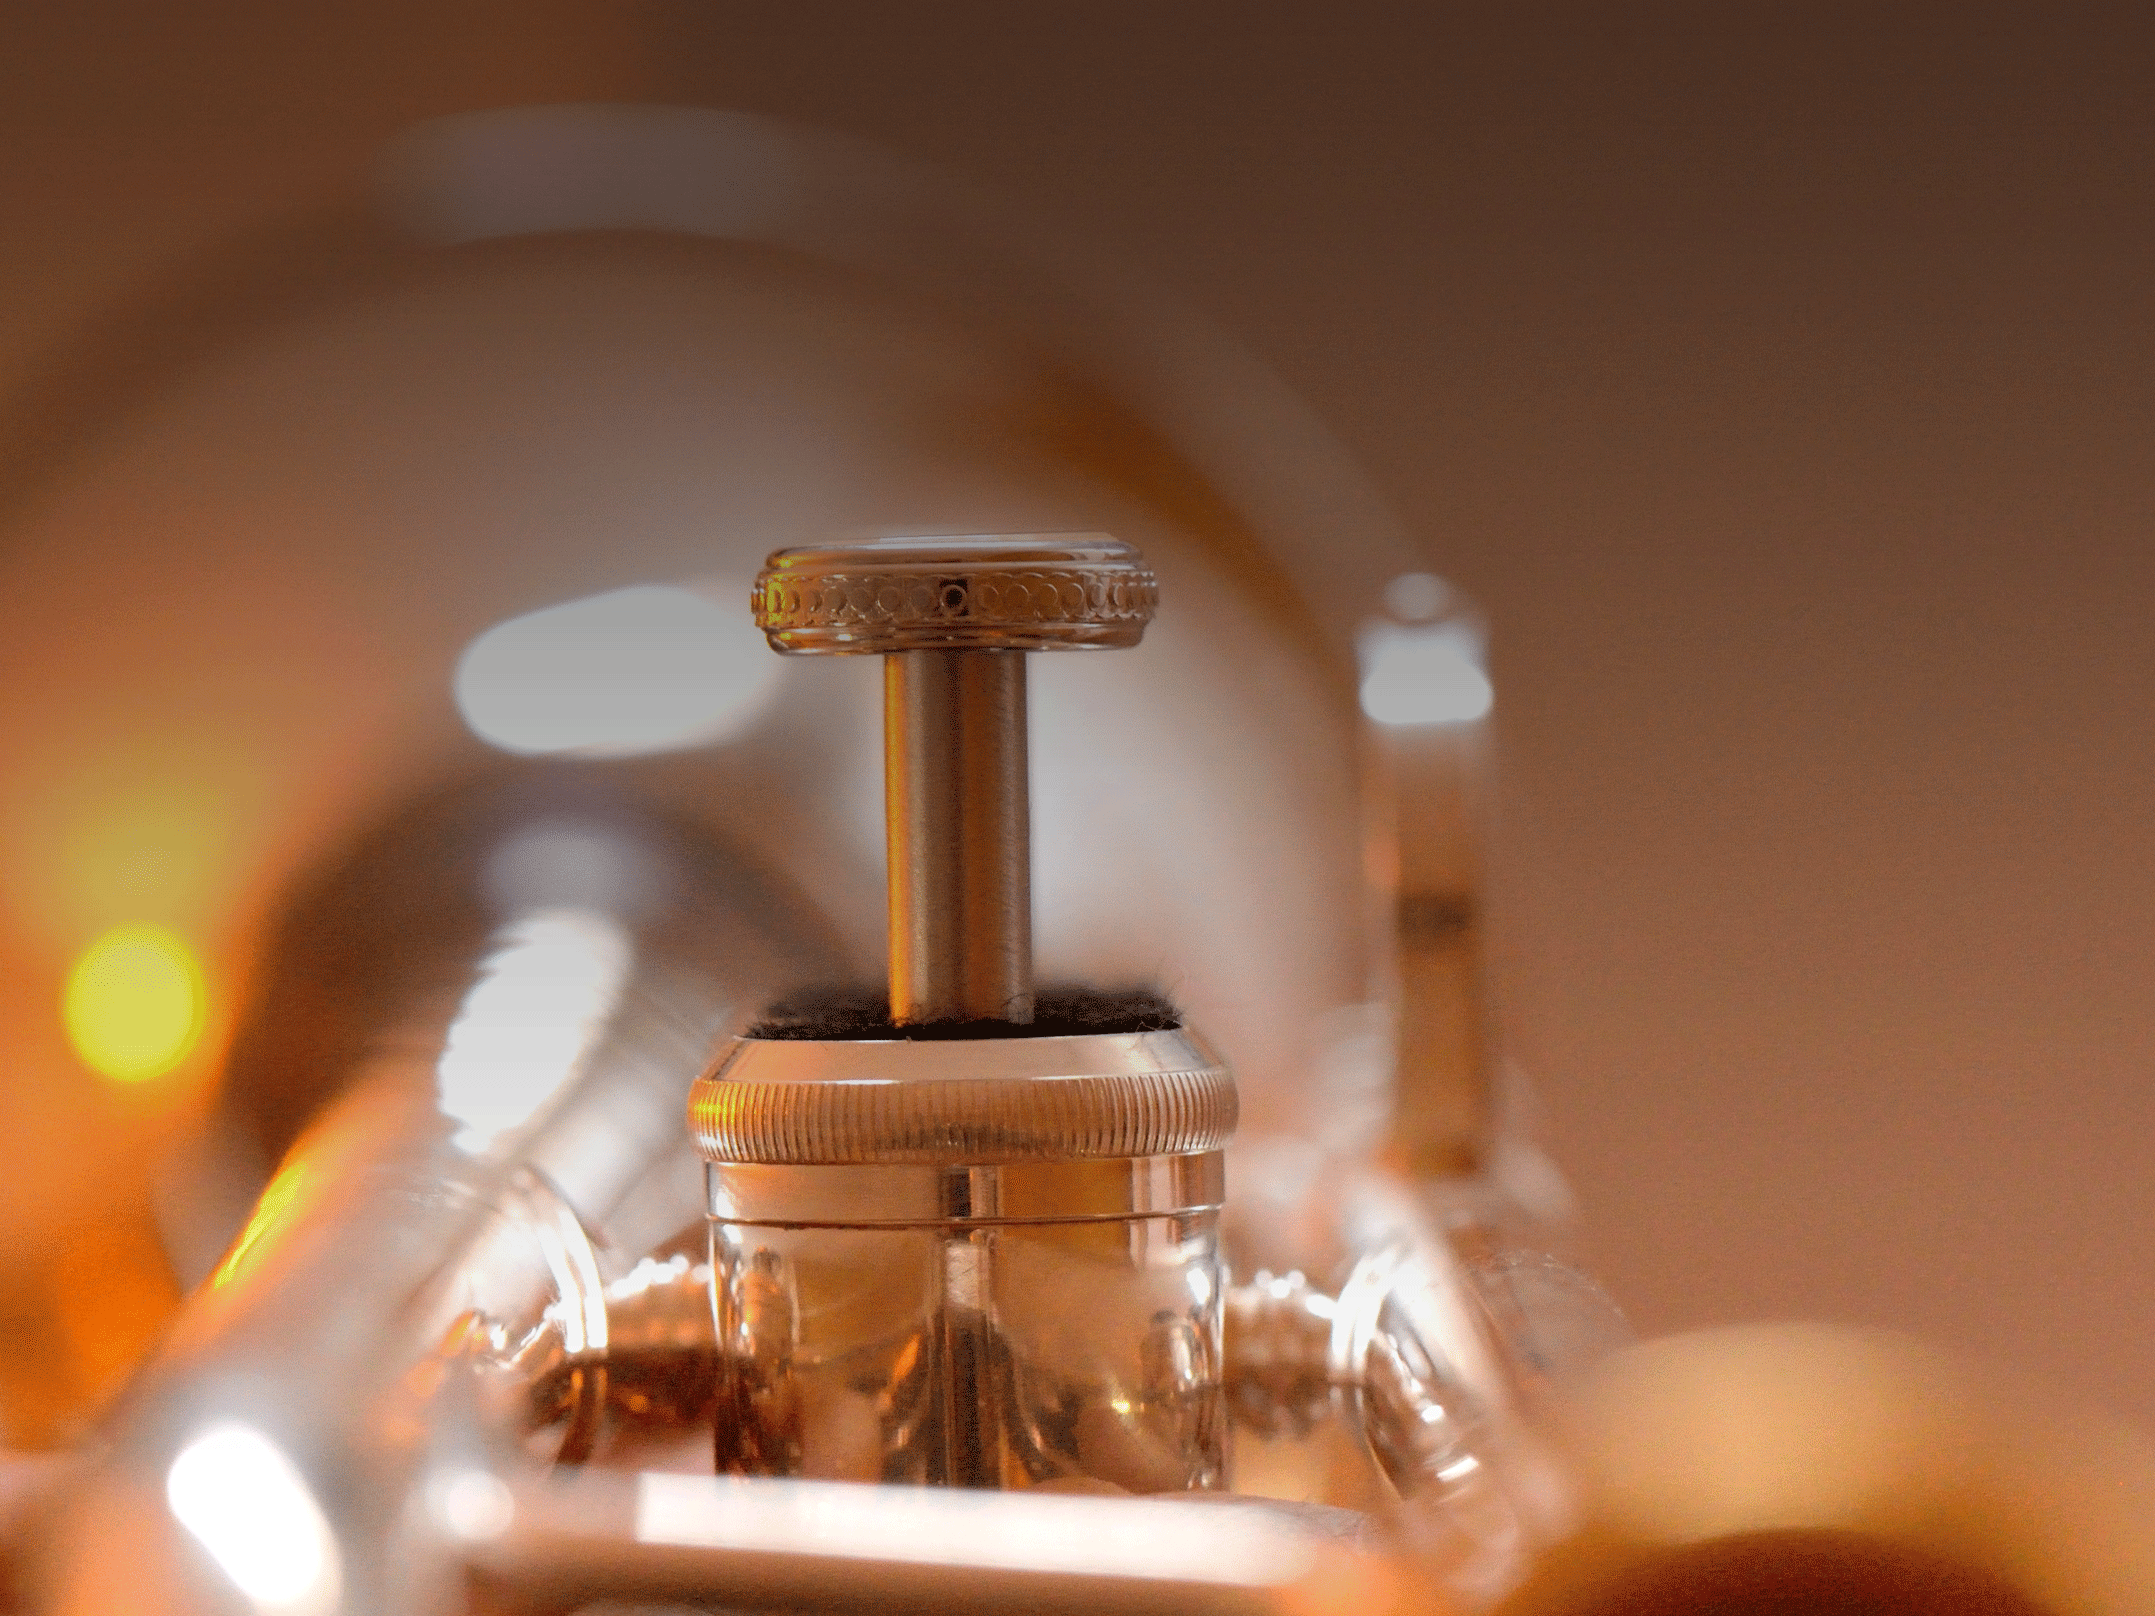 Closeup of a flugelhorn valve